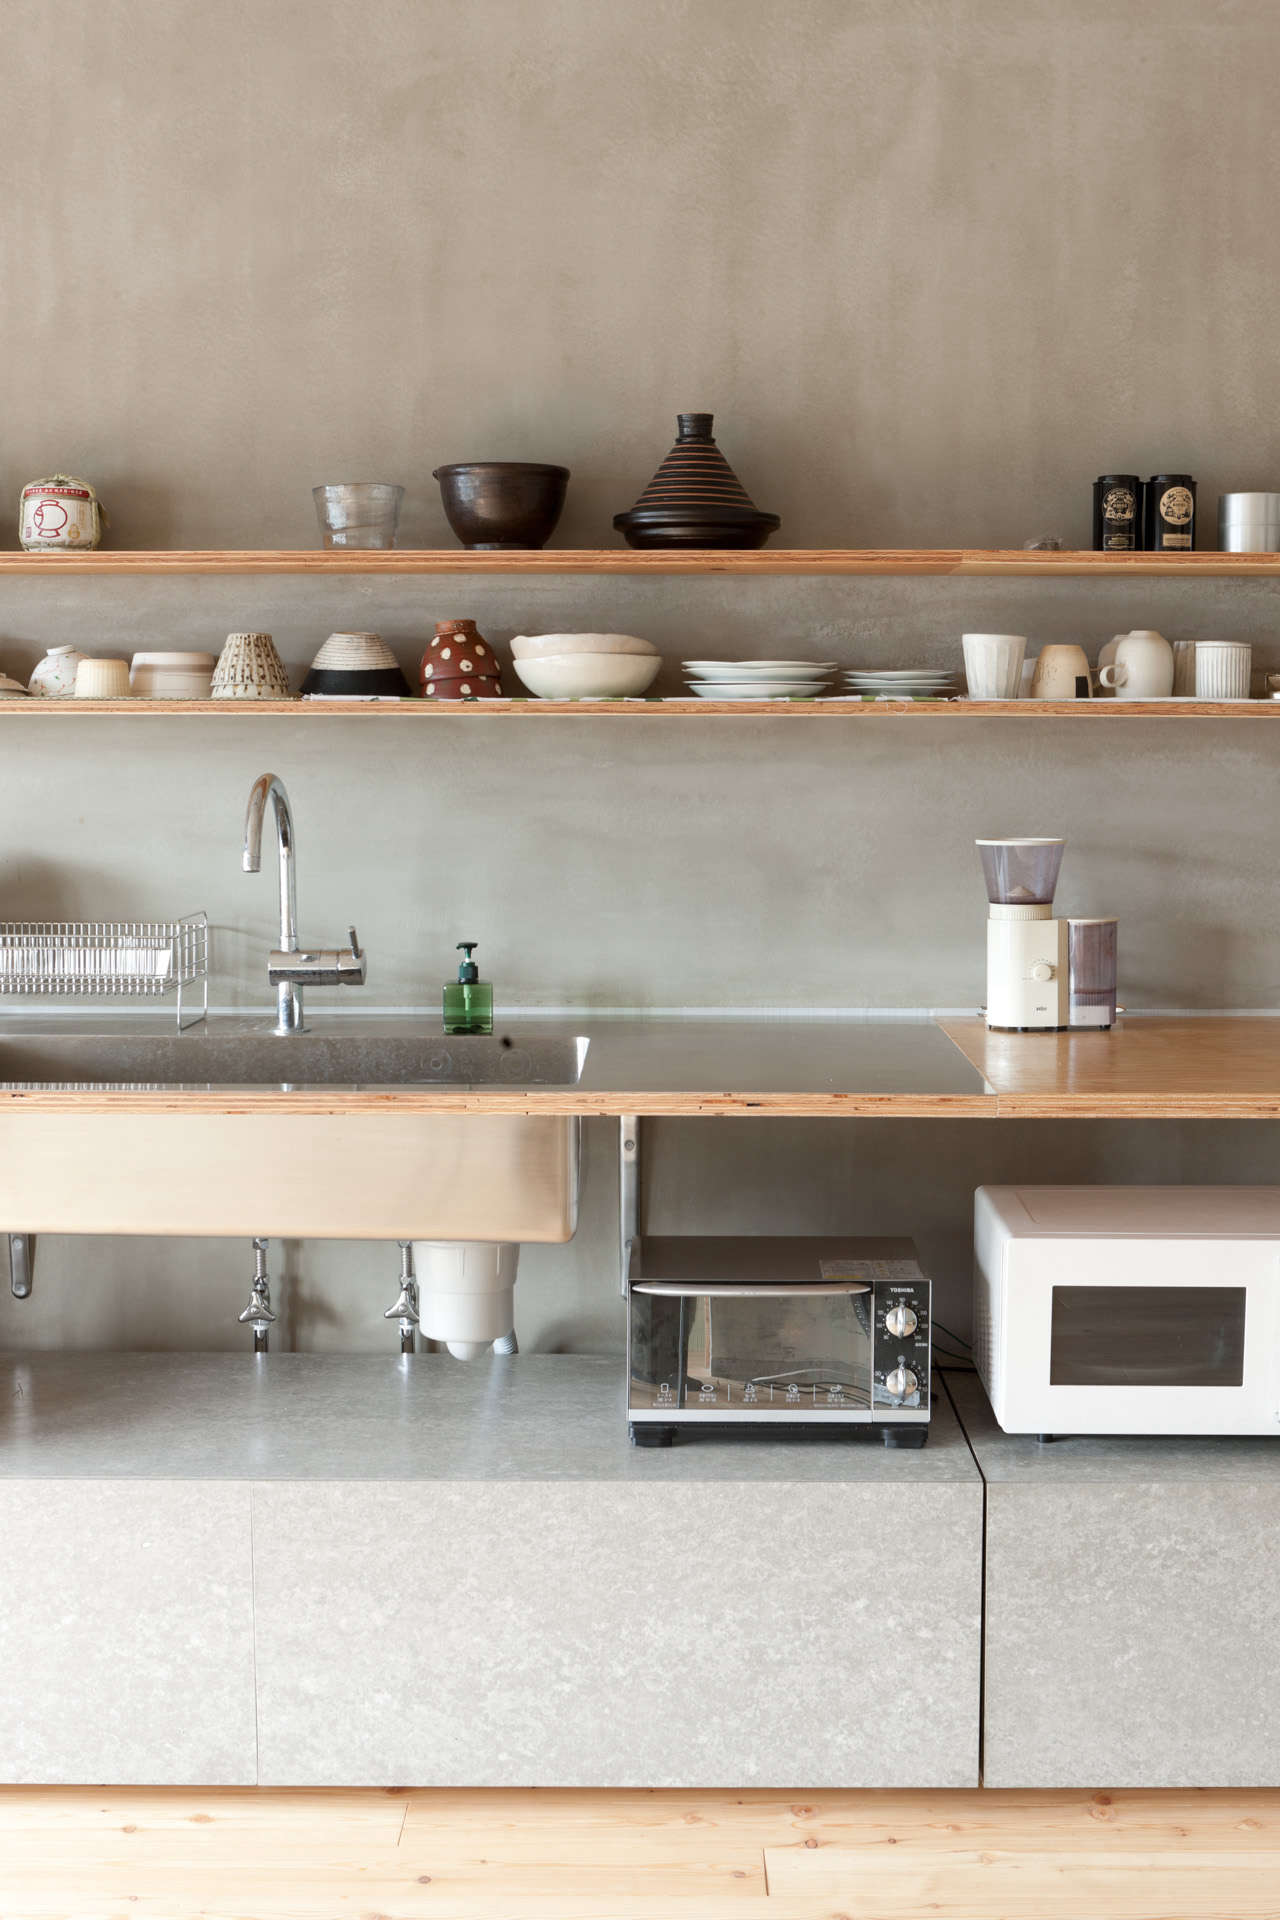 A kitchen in Japan with a mix of concrete and wood by Naruse Inokuma Architects fromSteal This Look: A Restaurant Supply Kitchen in Tokyo.